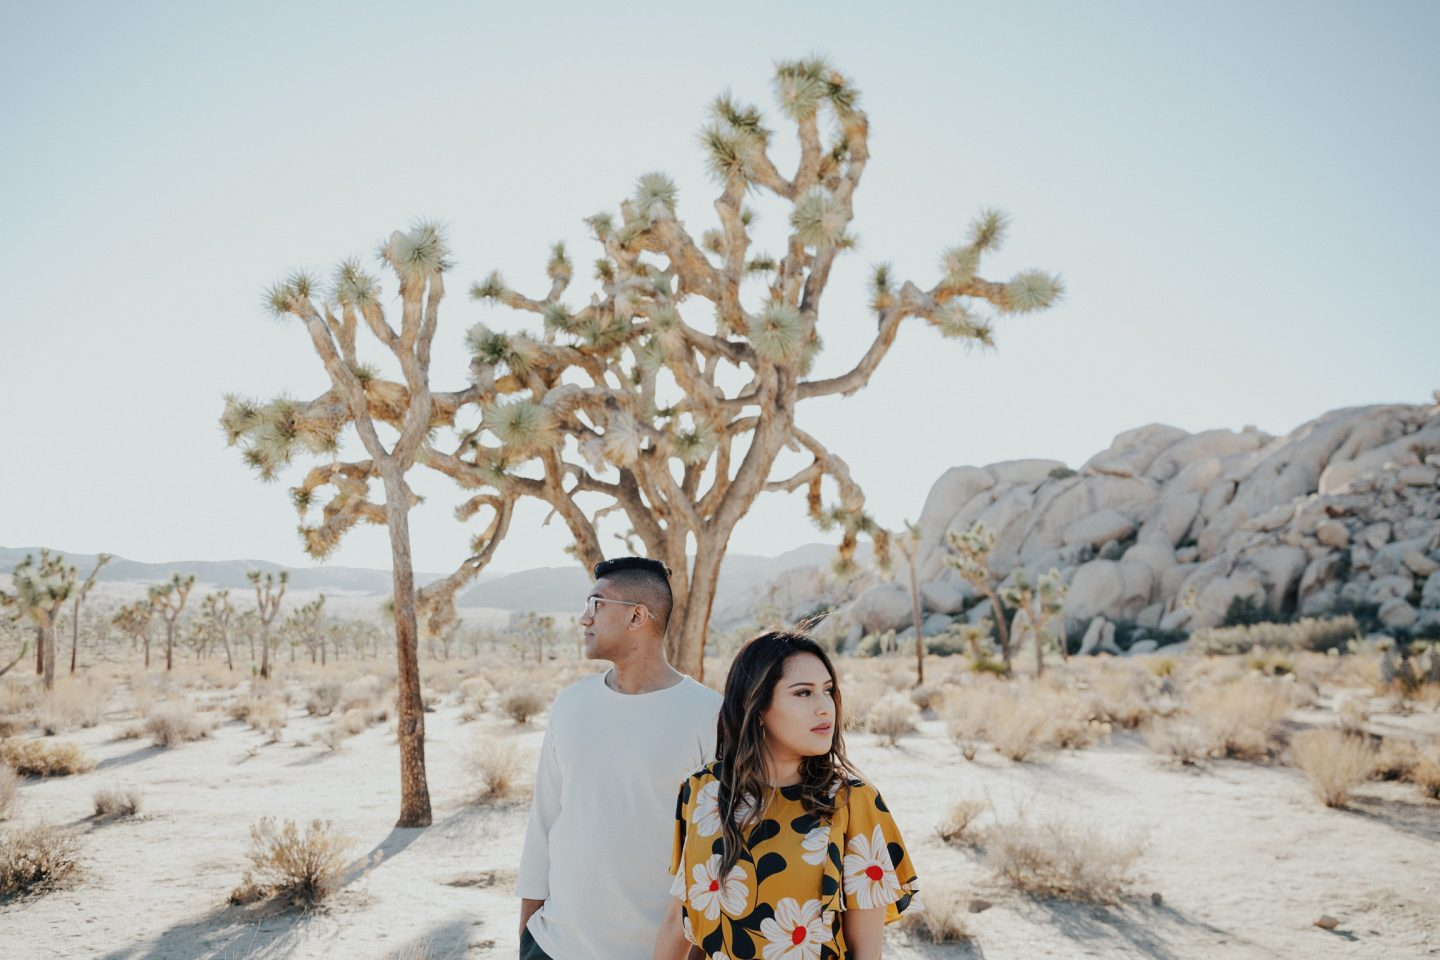 Engagement Shoot at Joshua Tree